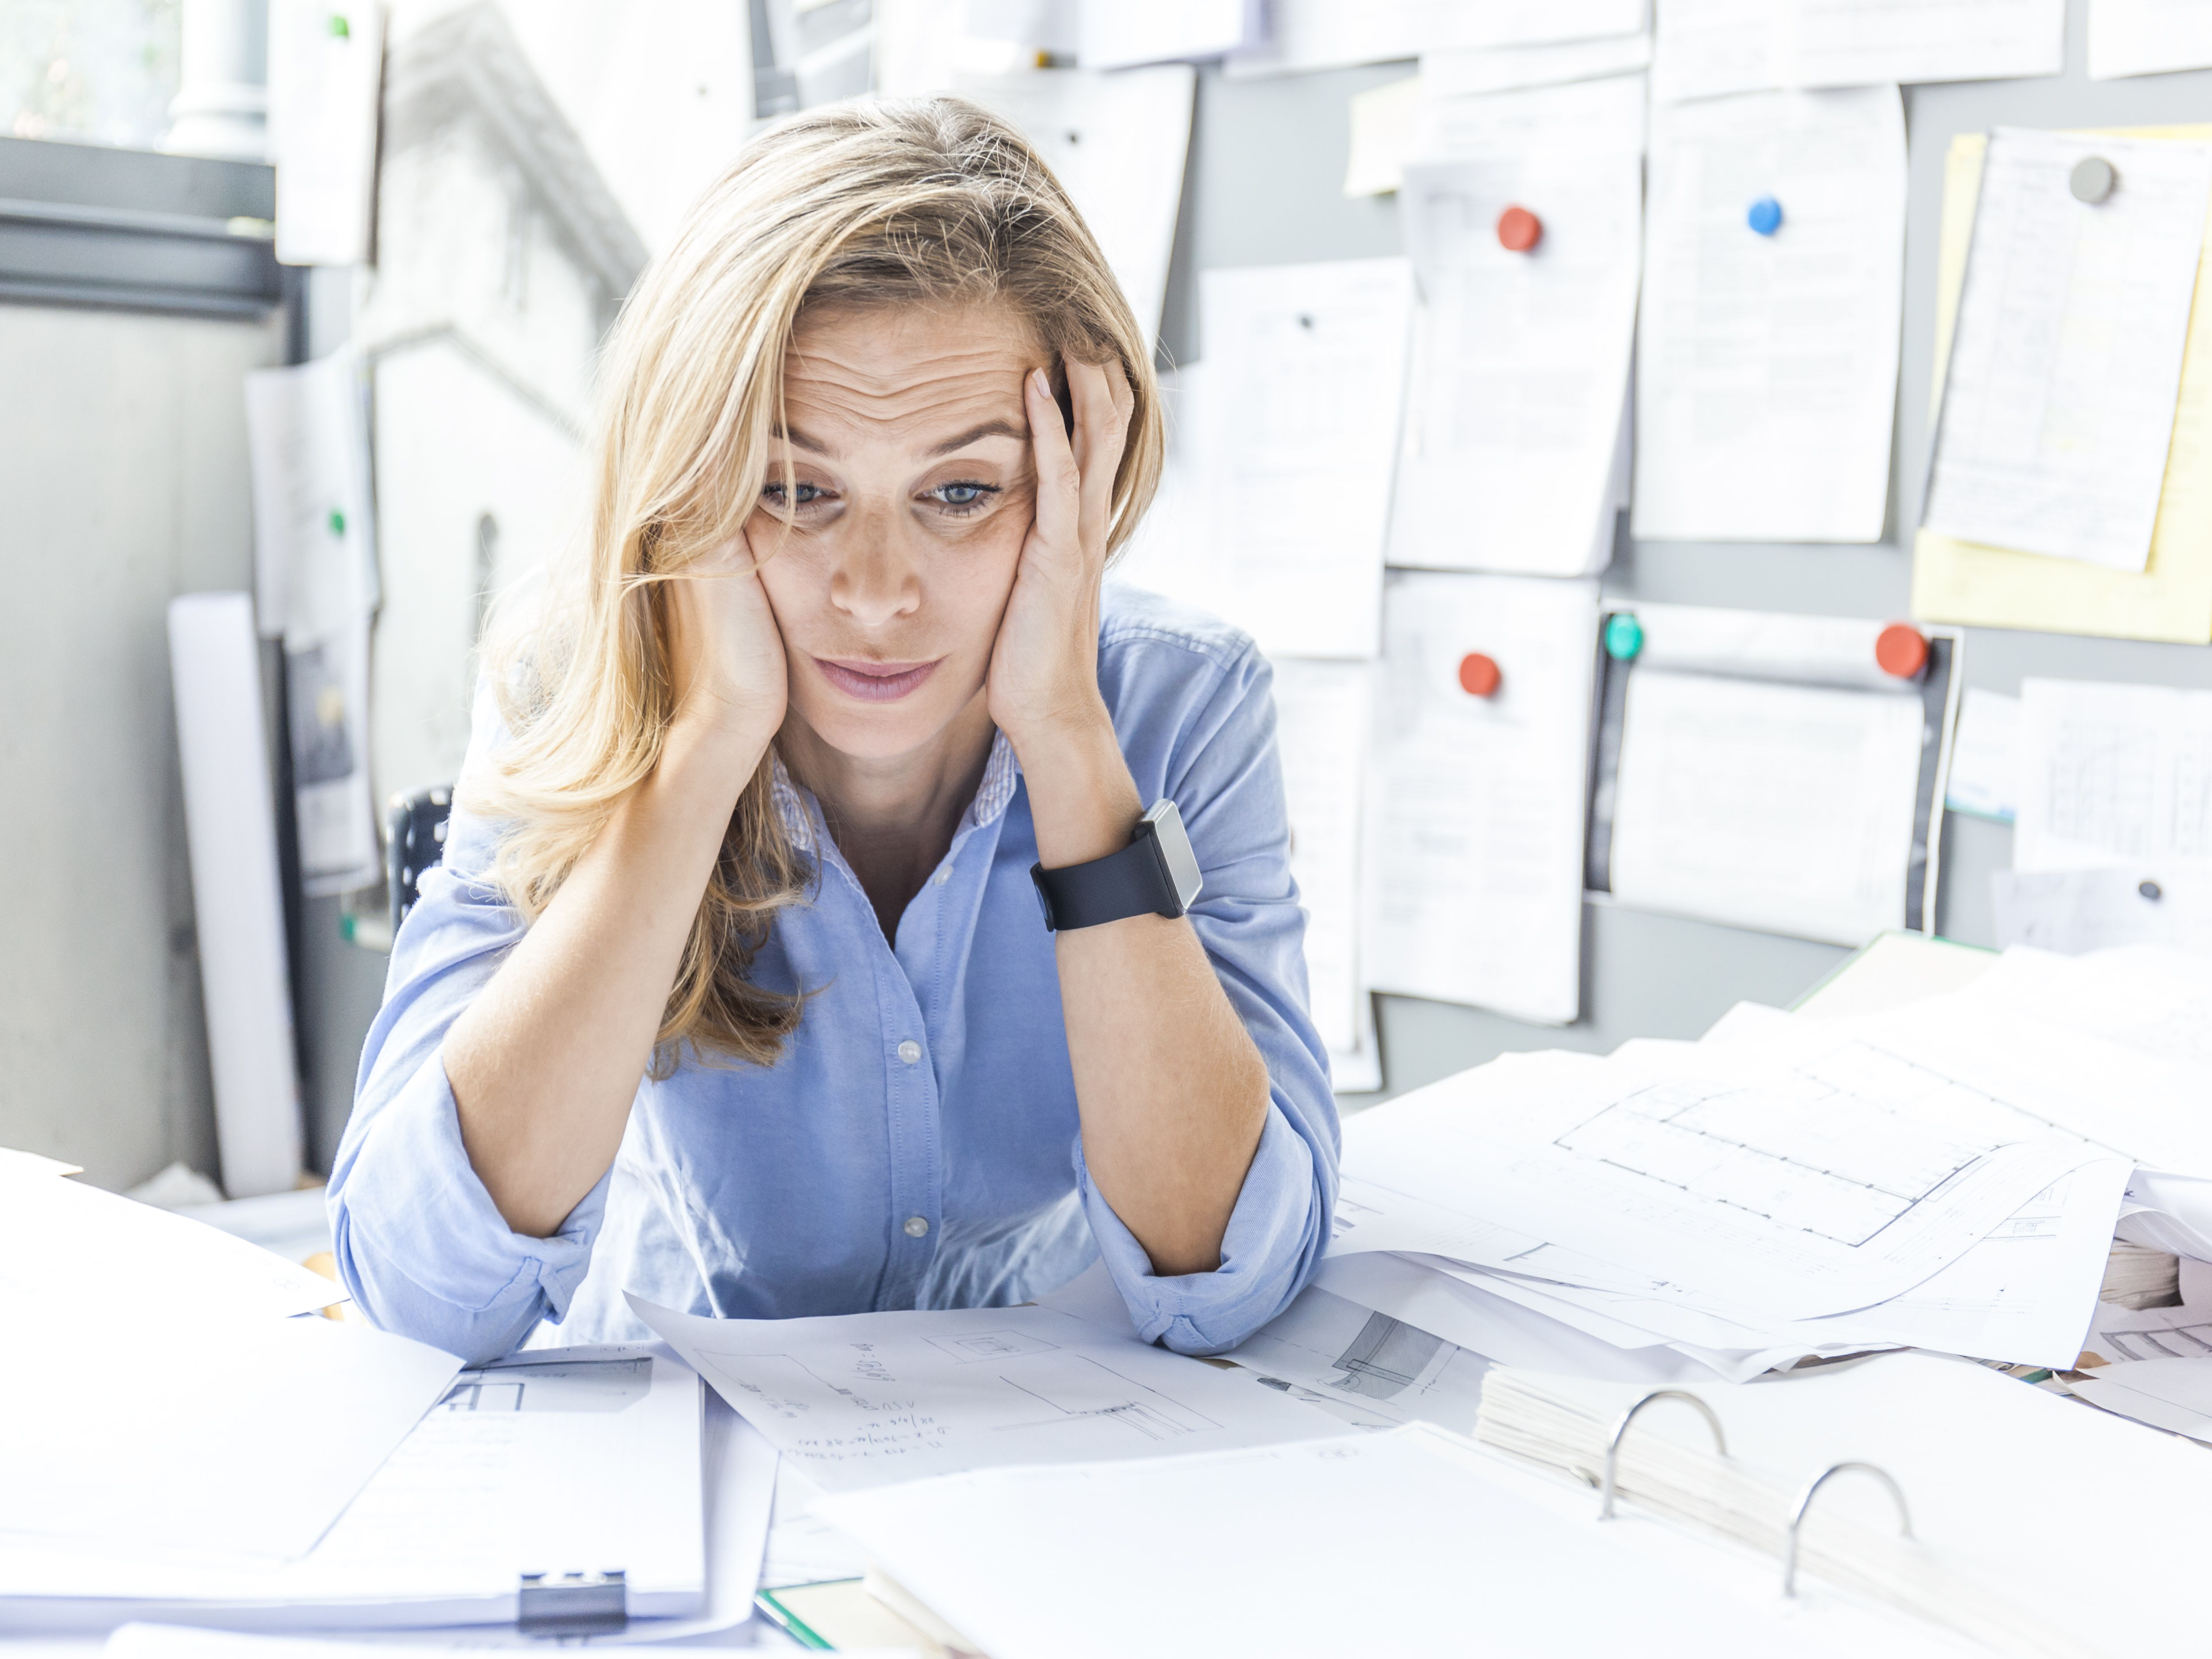 10 Ways to Deal With Work Burnout